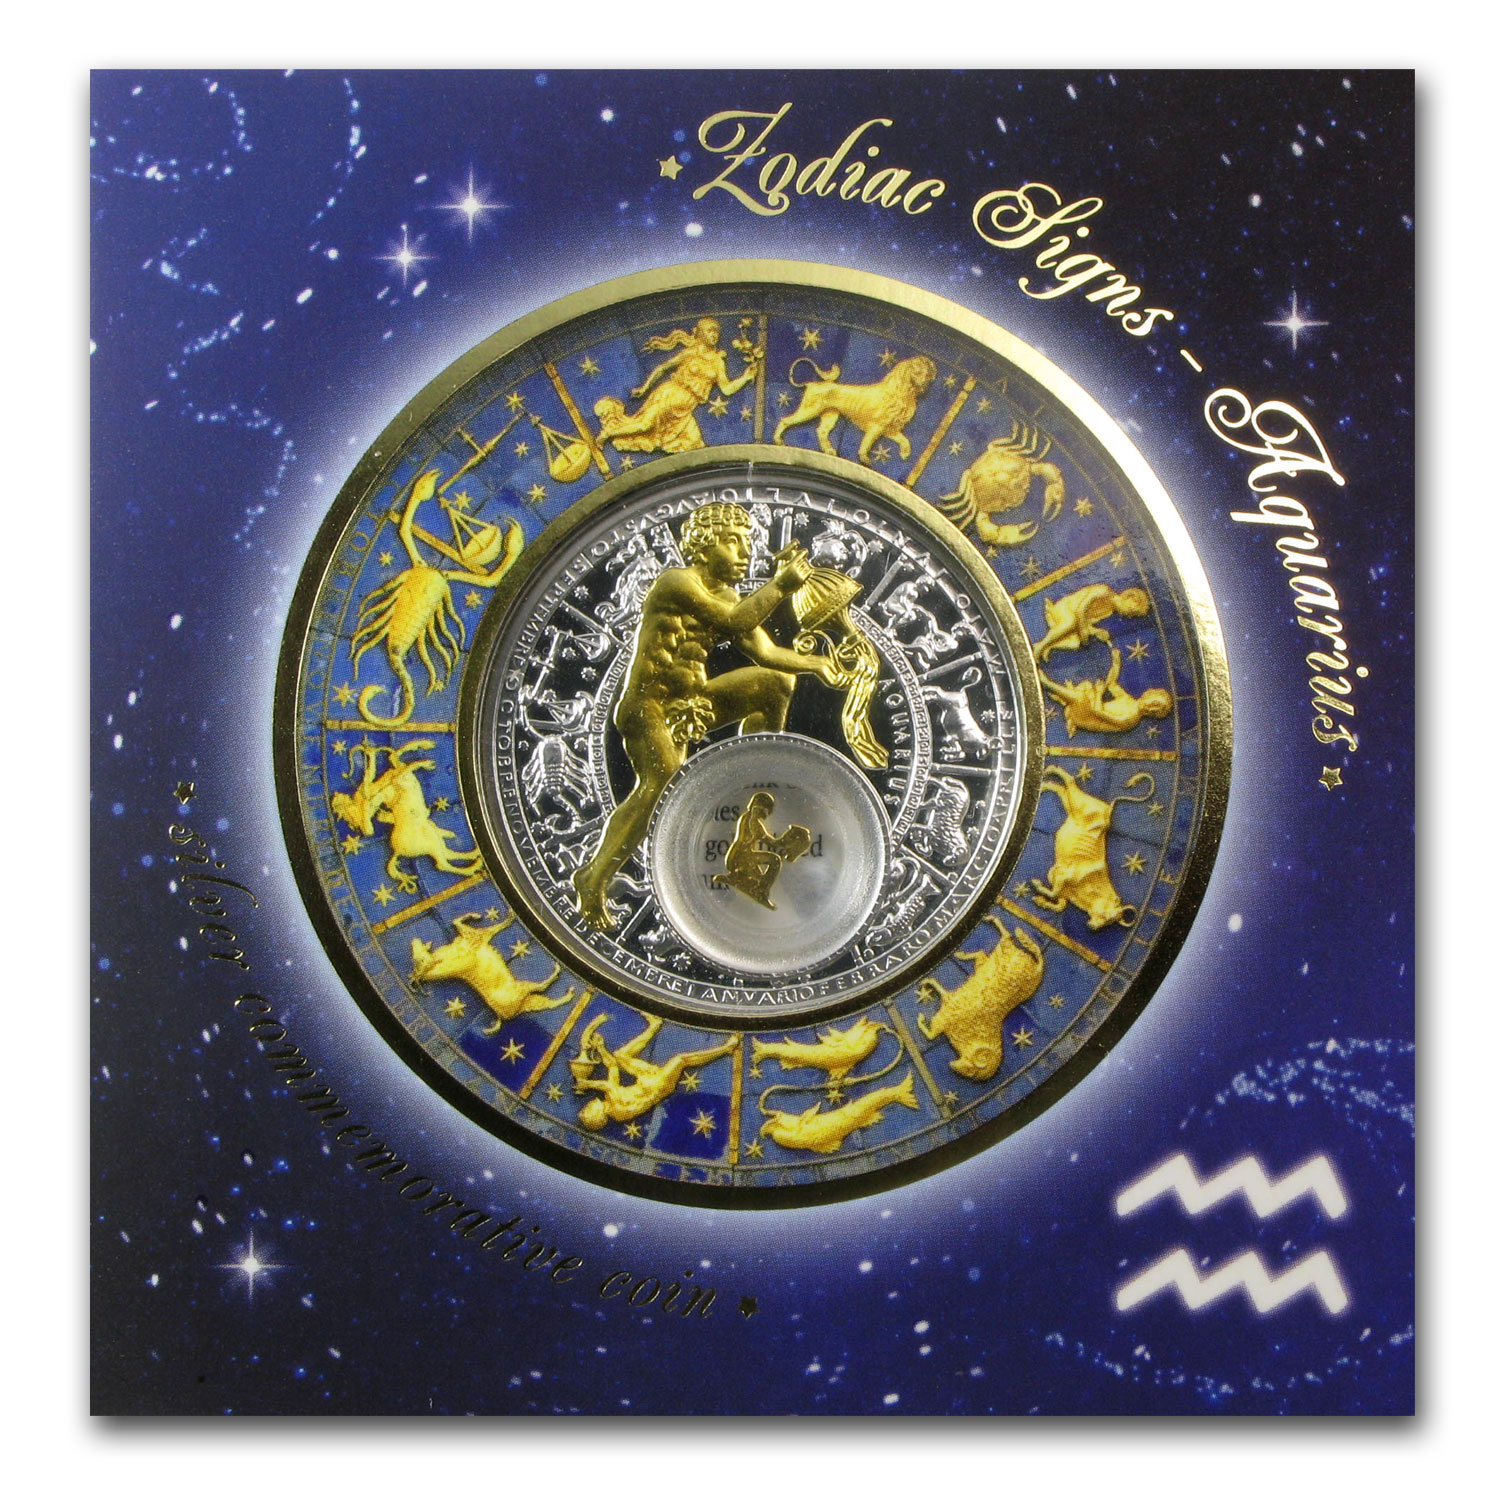 Belarus 2013 Silver Proof 20 Rubles Zodiac Signs - Aquarius